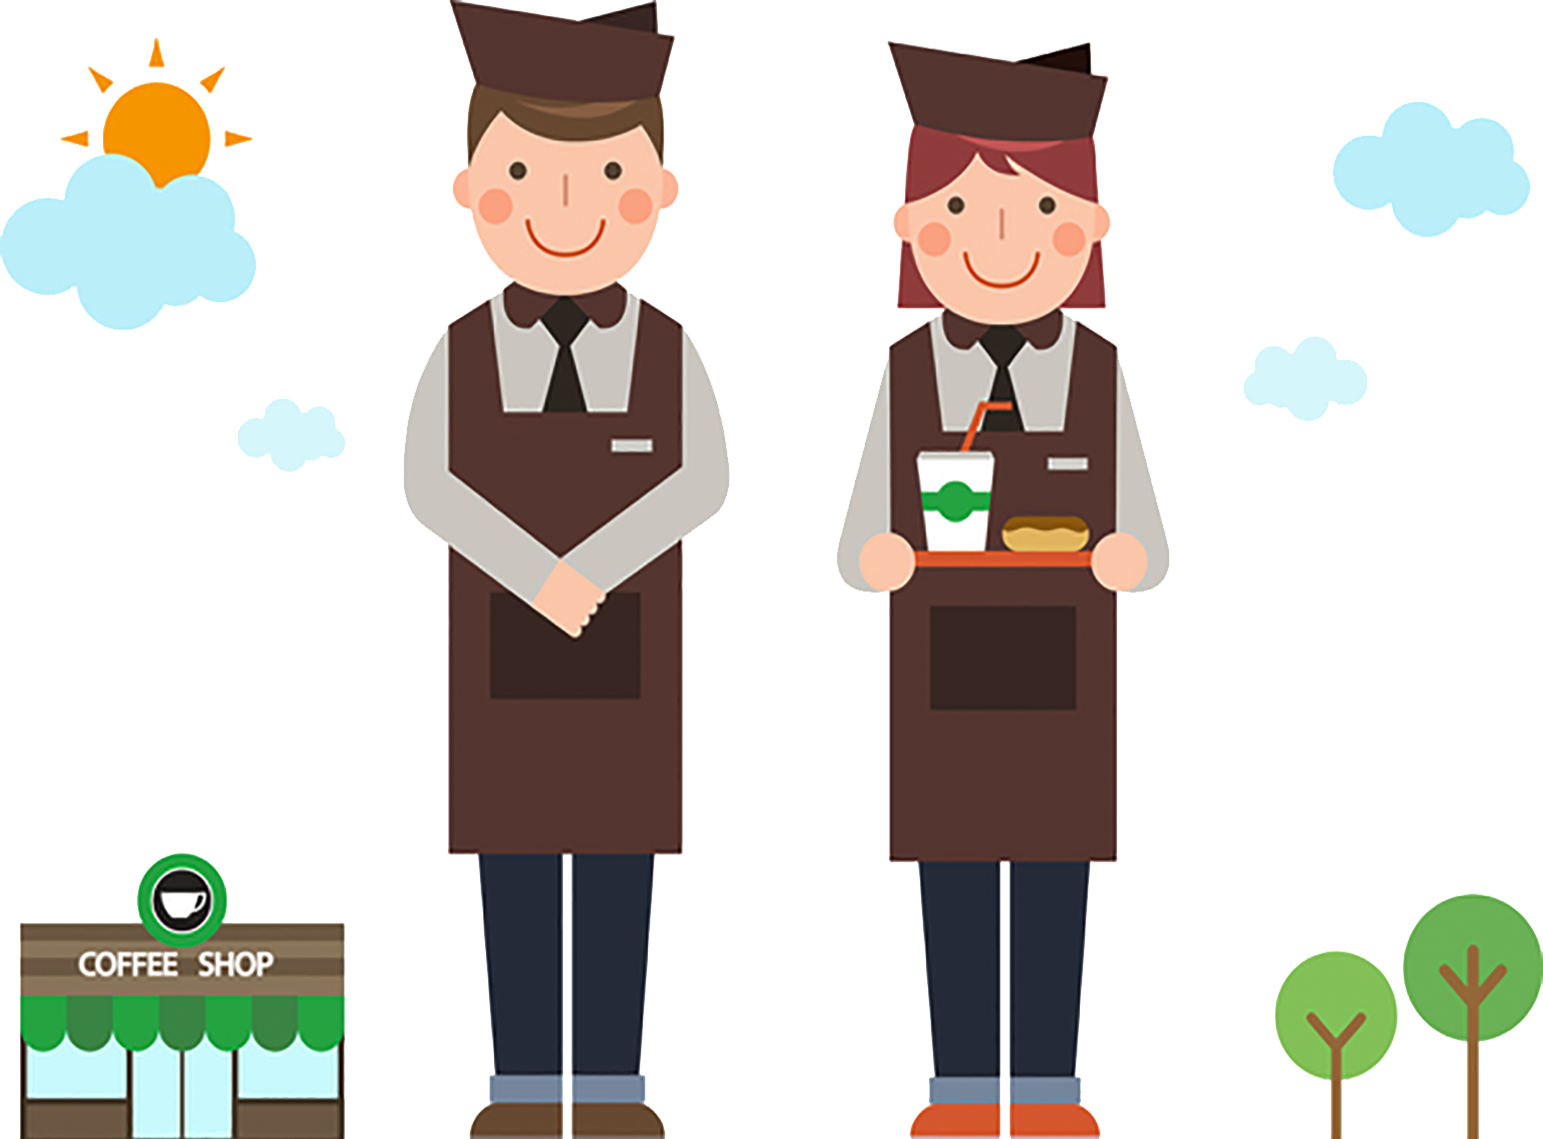 Professional clipart professional clothing. Coffee cafe cafxe au